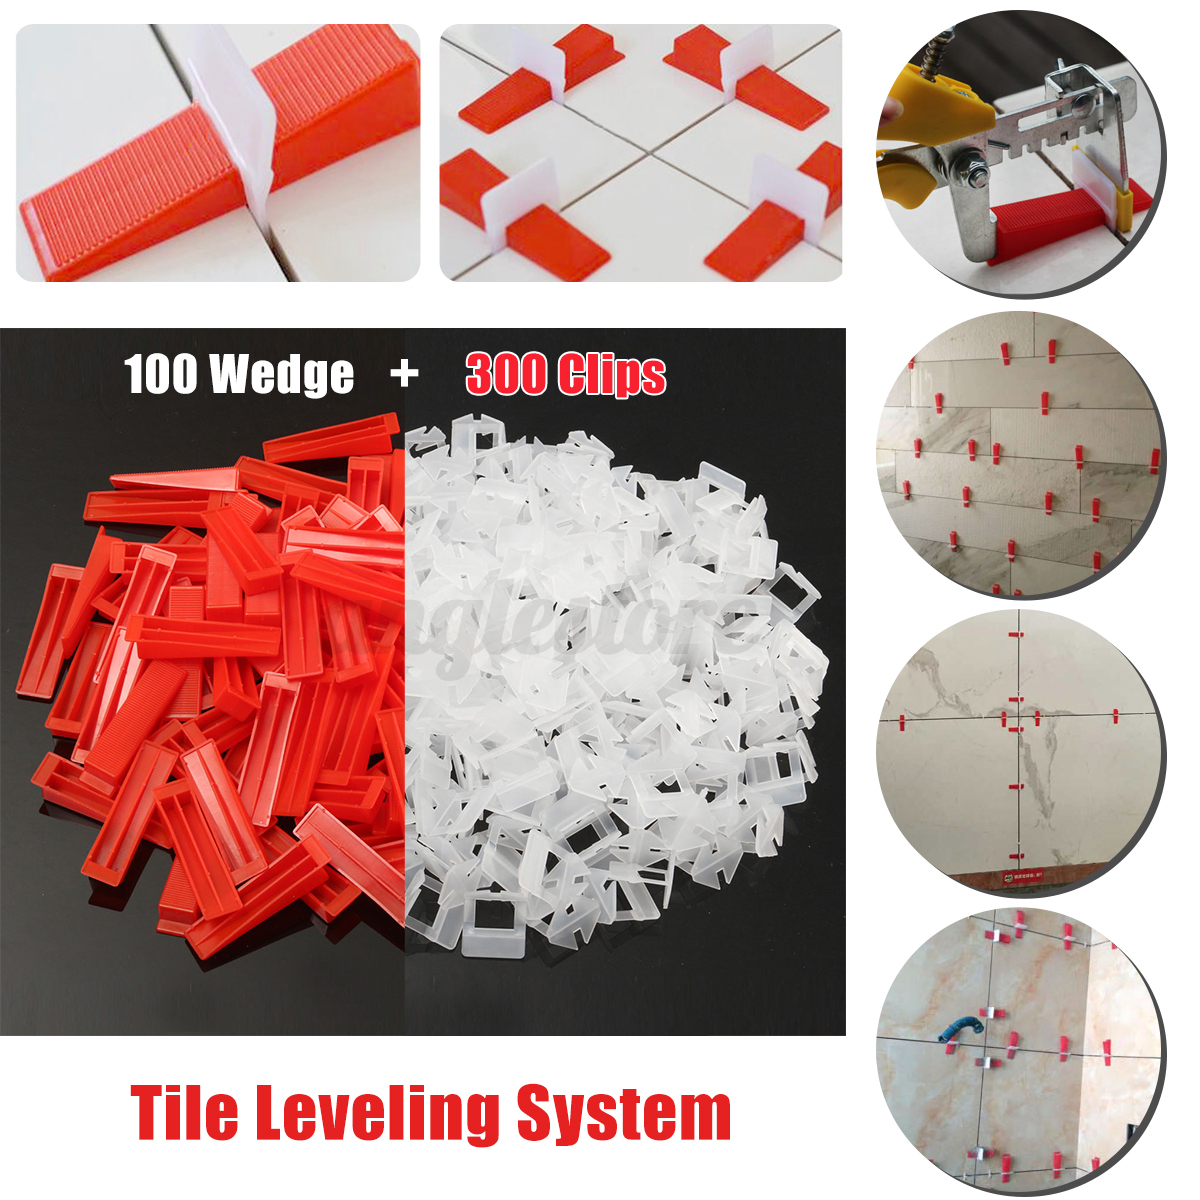 100 1000pc Tile Leveling System Clips Wedges Wall Floor